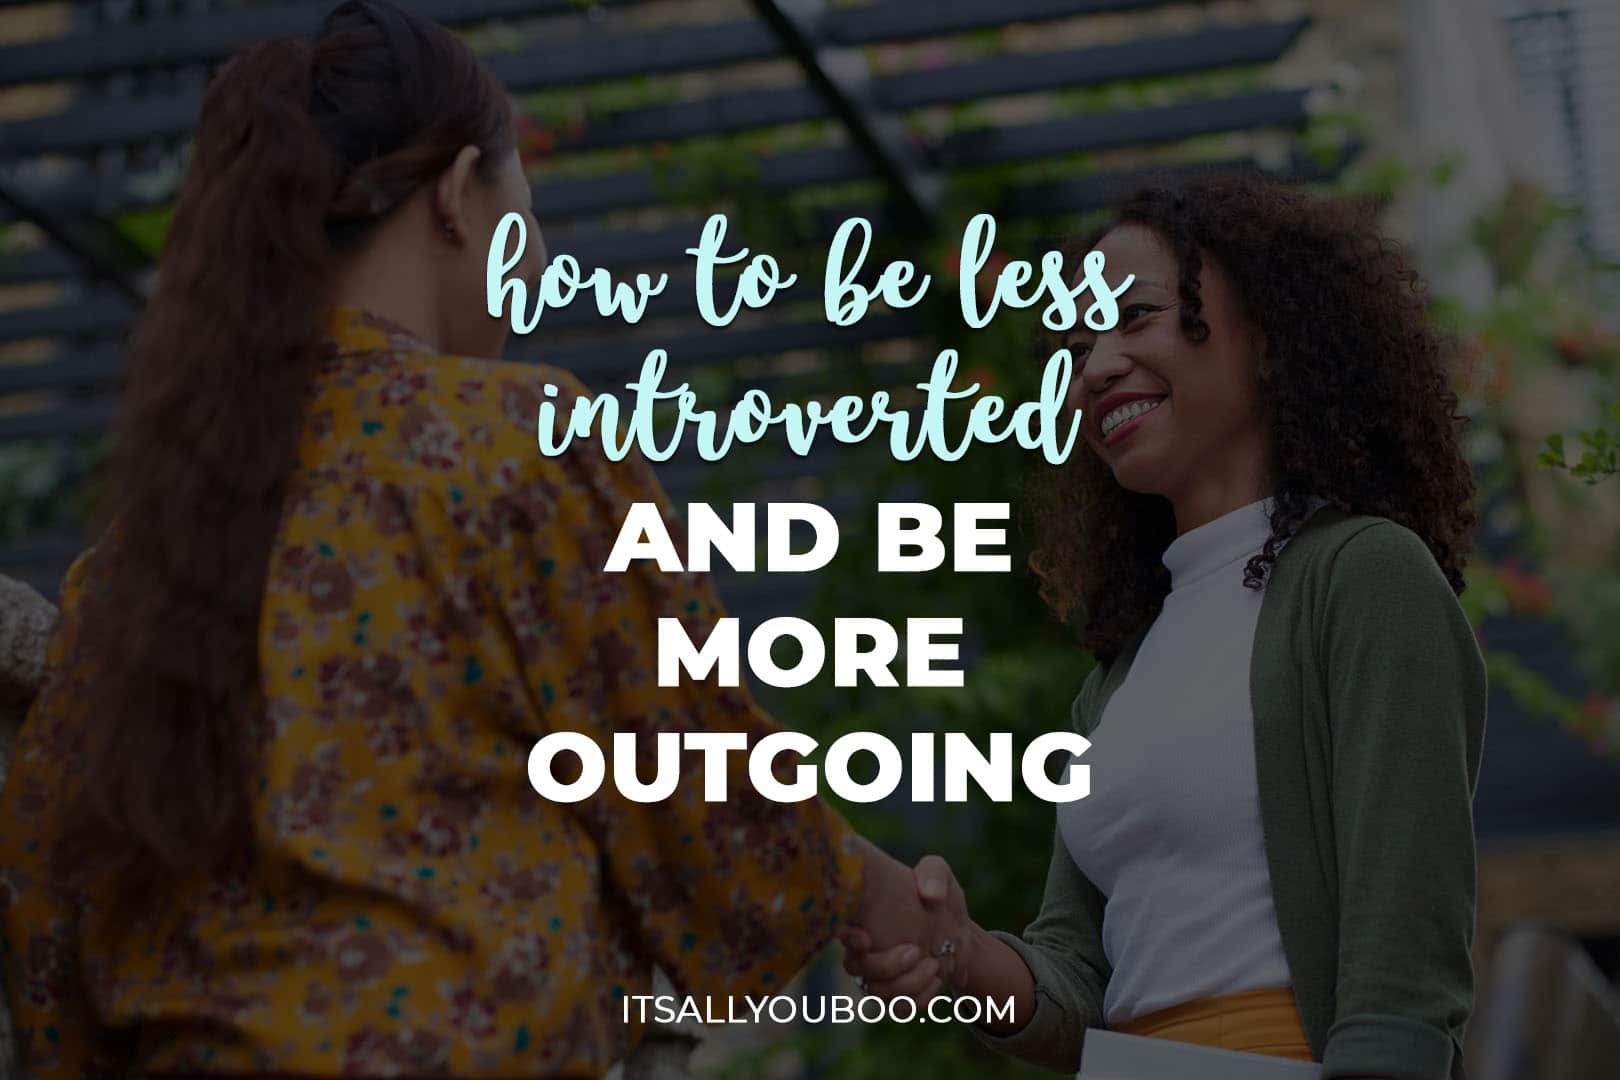 How to Be Less Introverted and Be More Outgoing